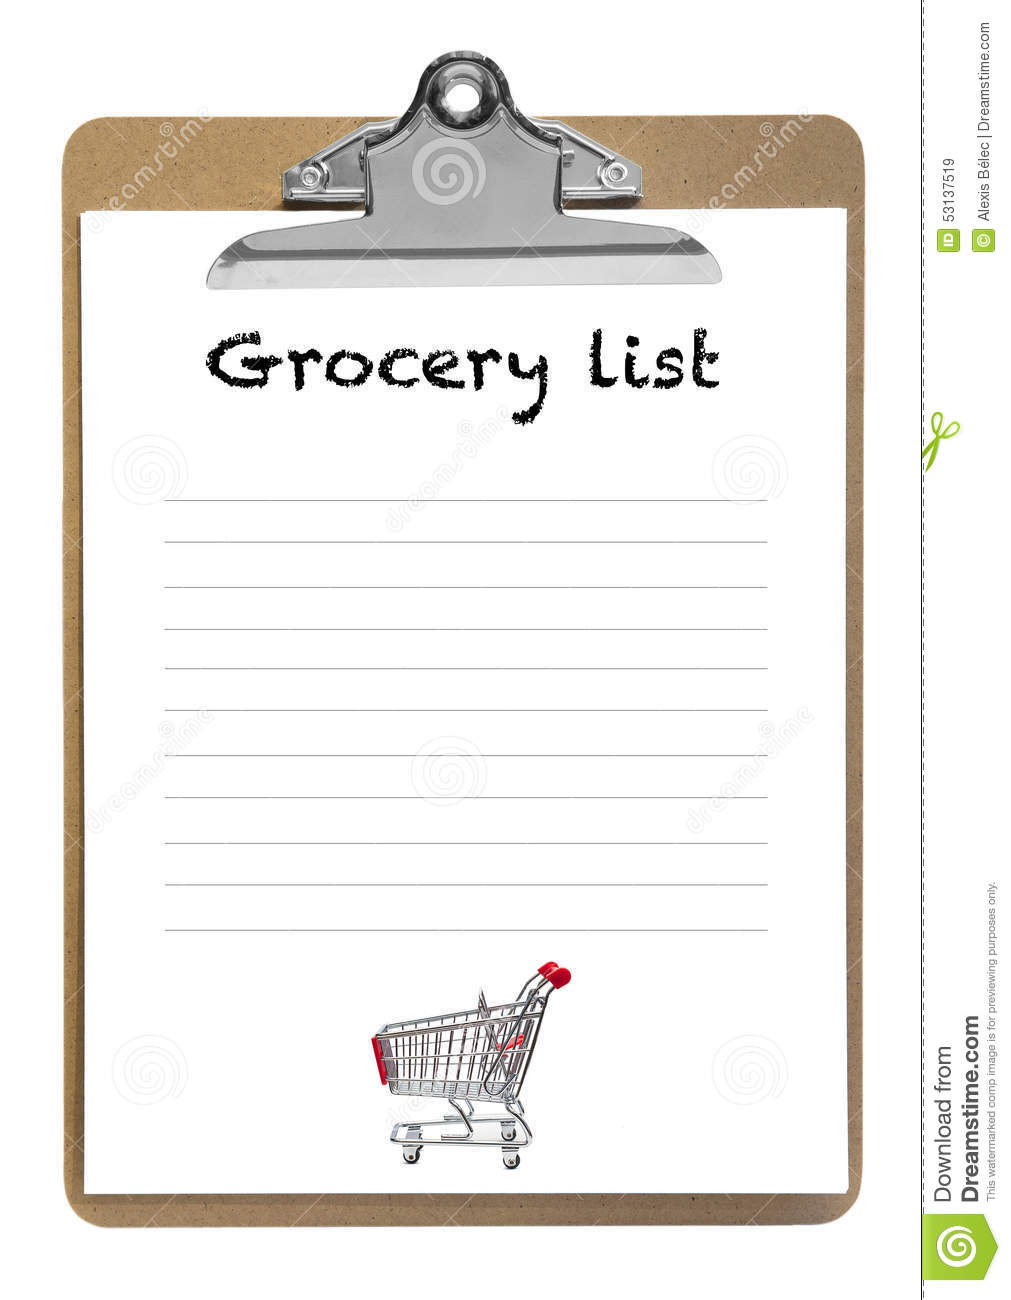 grocery list stock photo image 53137519 Grocery Store Clip Art Clip Art Grocery List